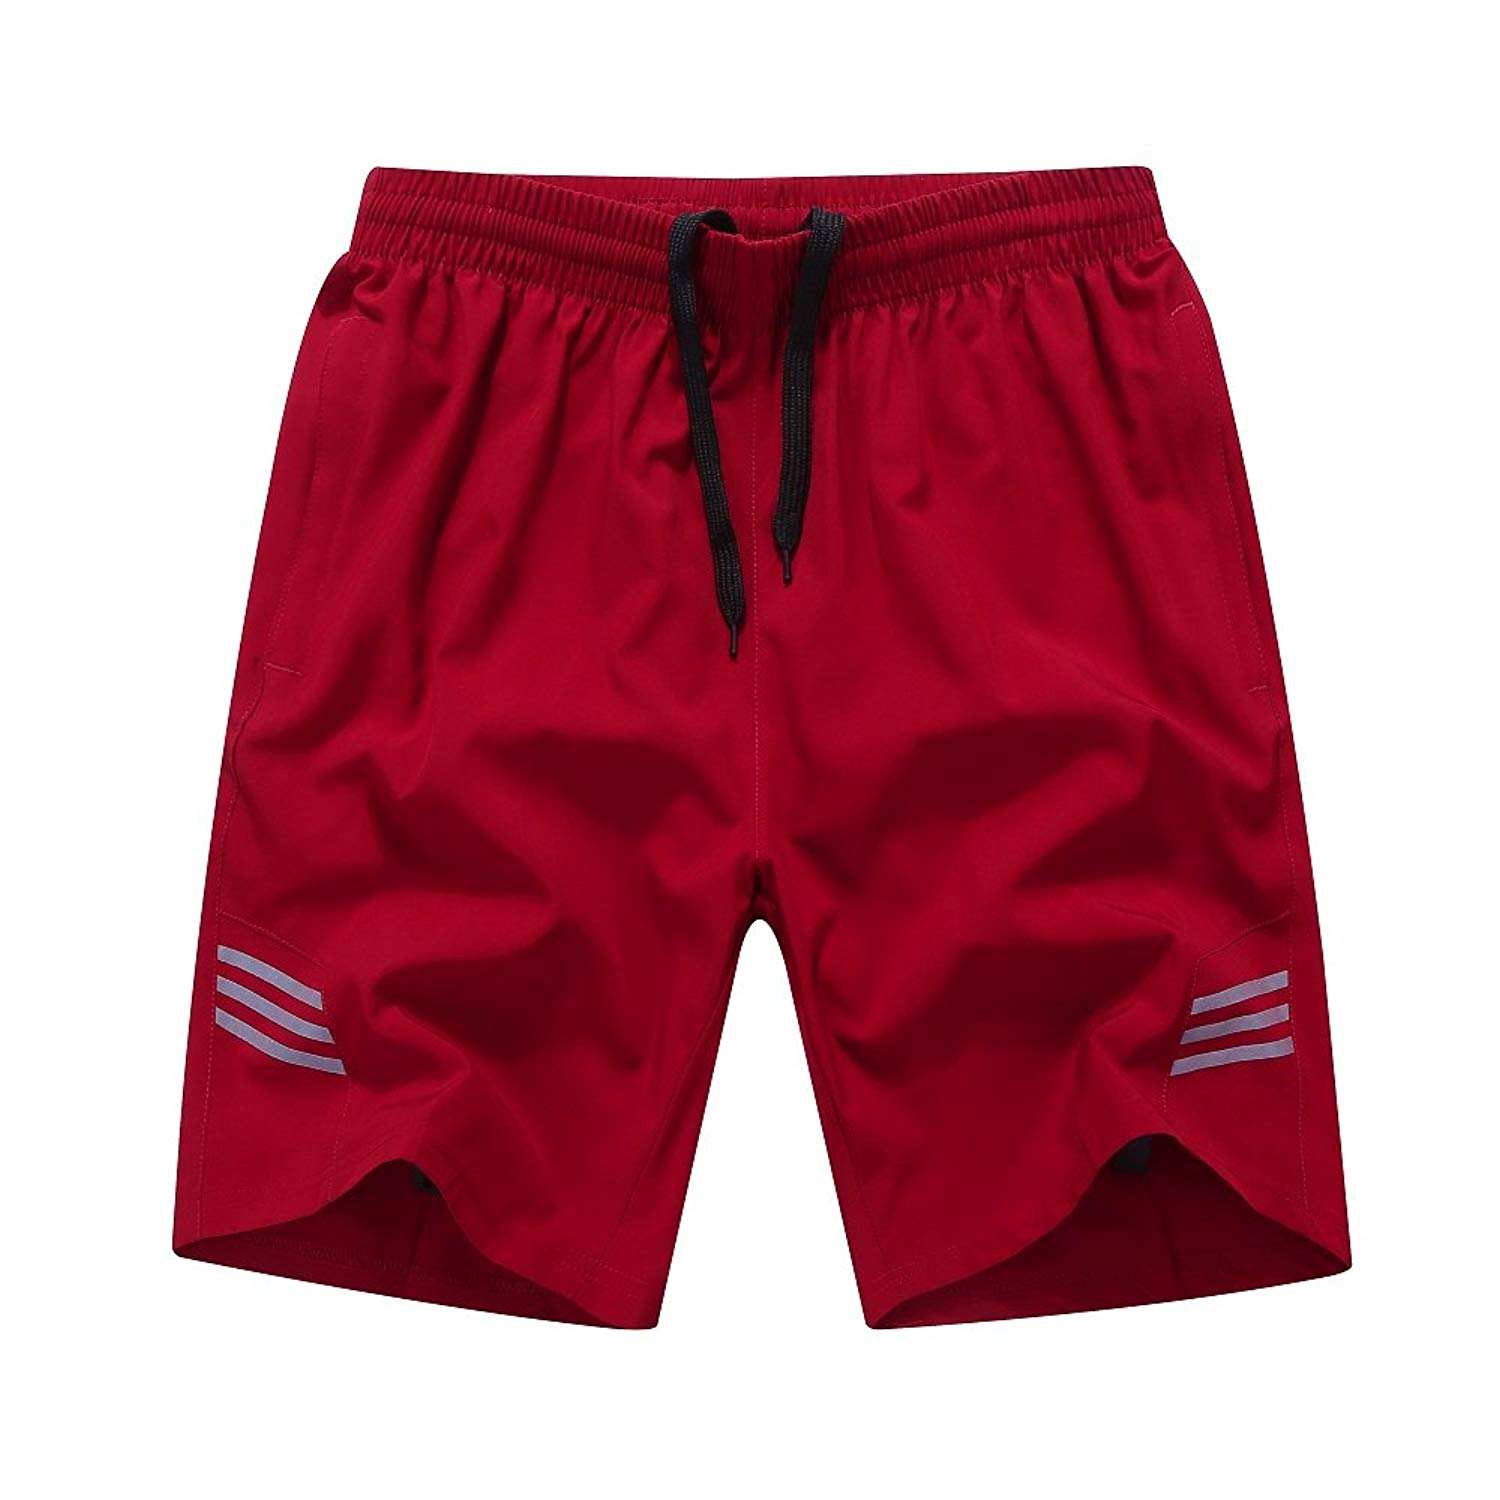 040c6b17fe Get Quotations · Dwar Men's Active Shorts,Swim Trunks, Workout Athletic  Shorts for The Beach, Lifting